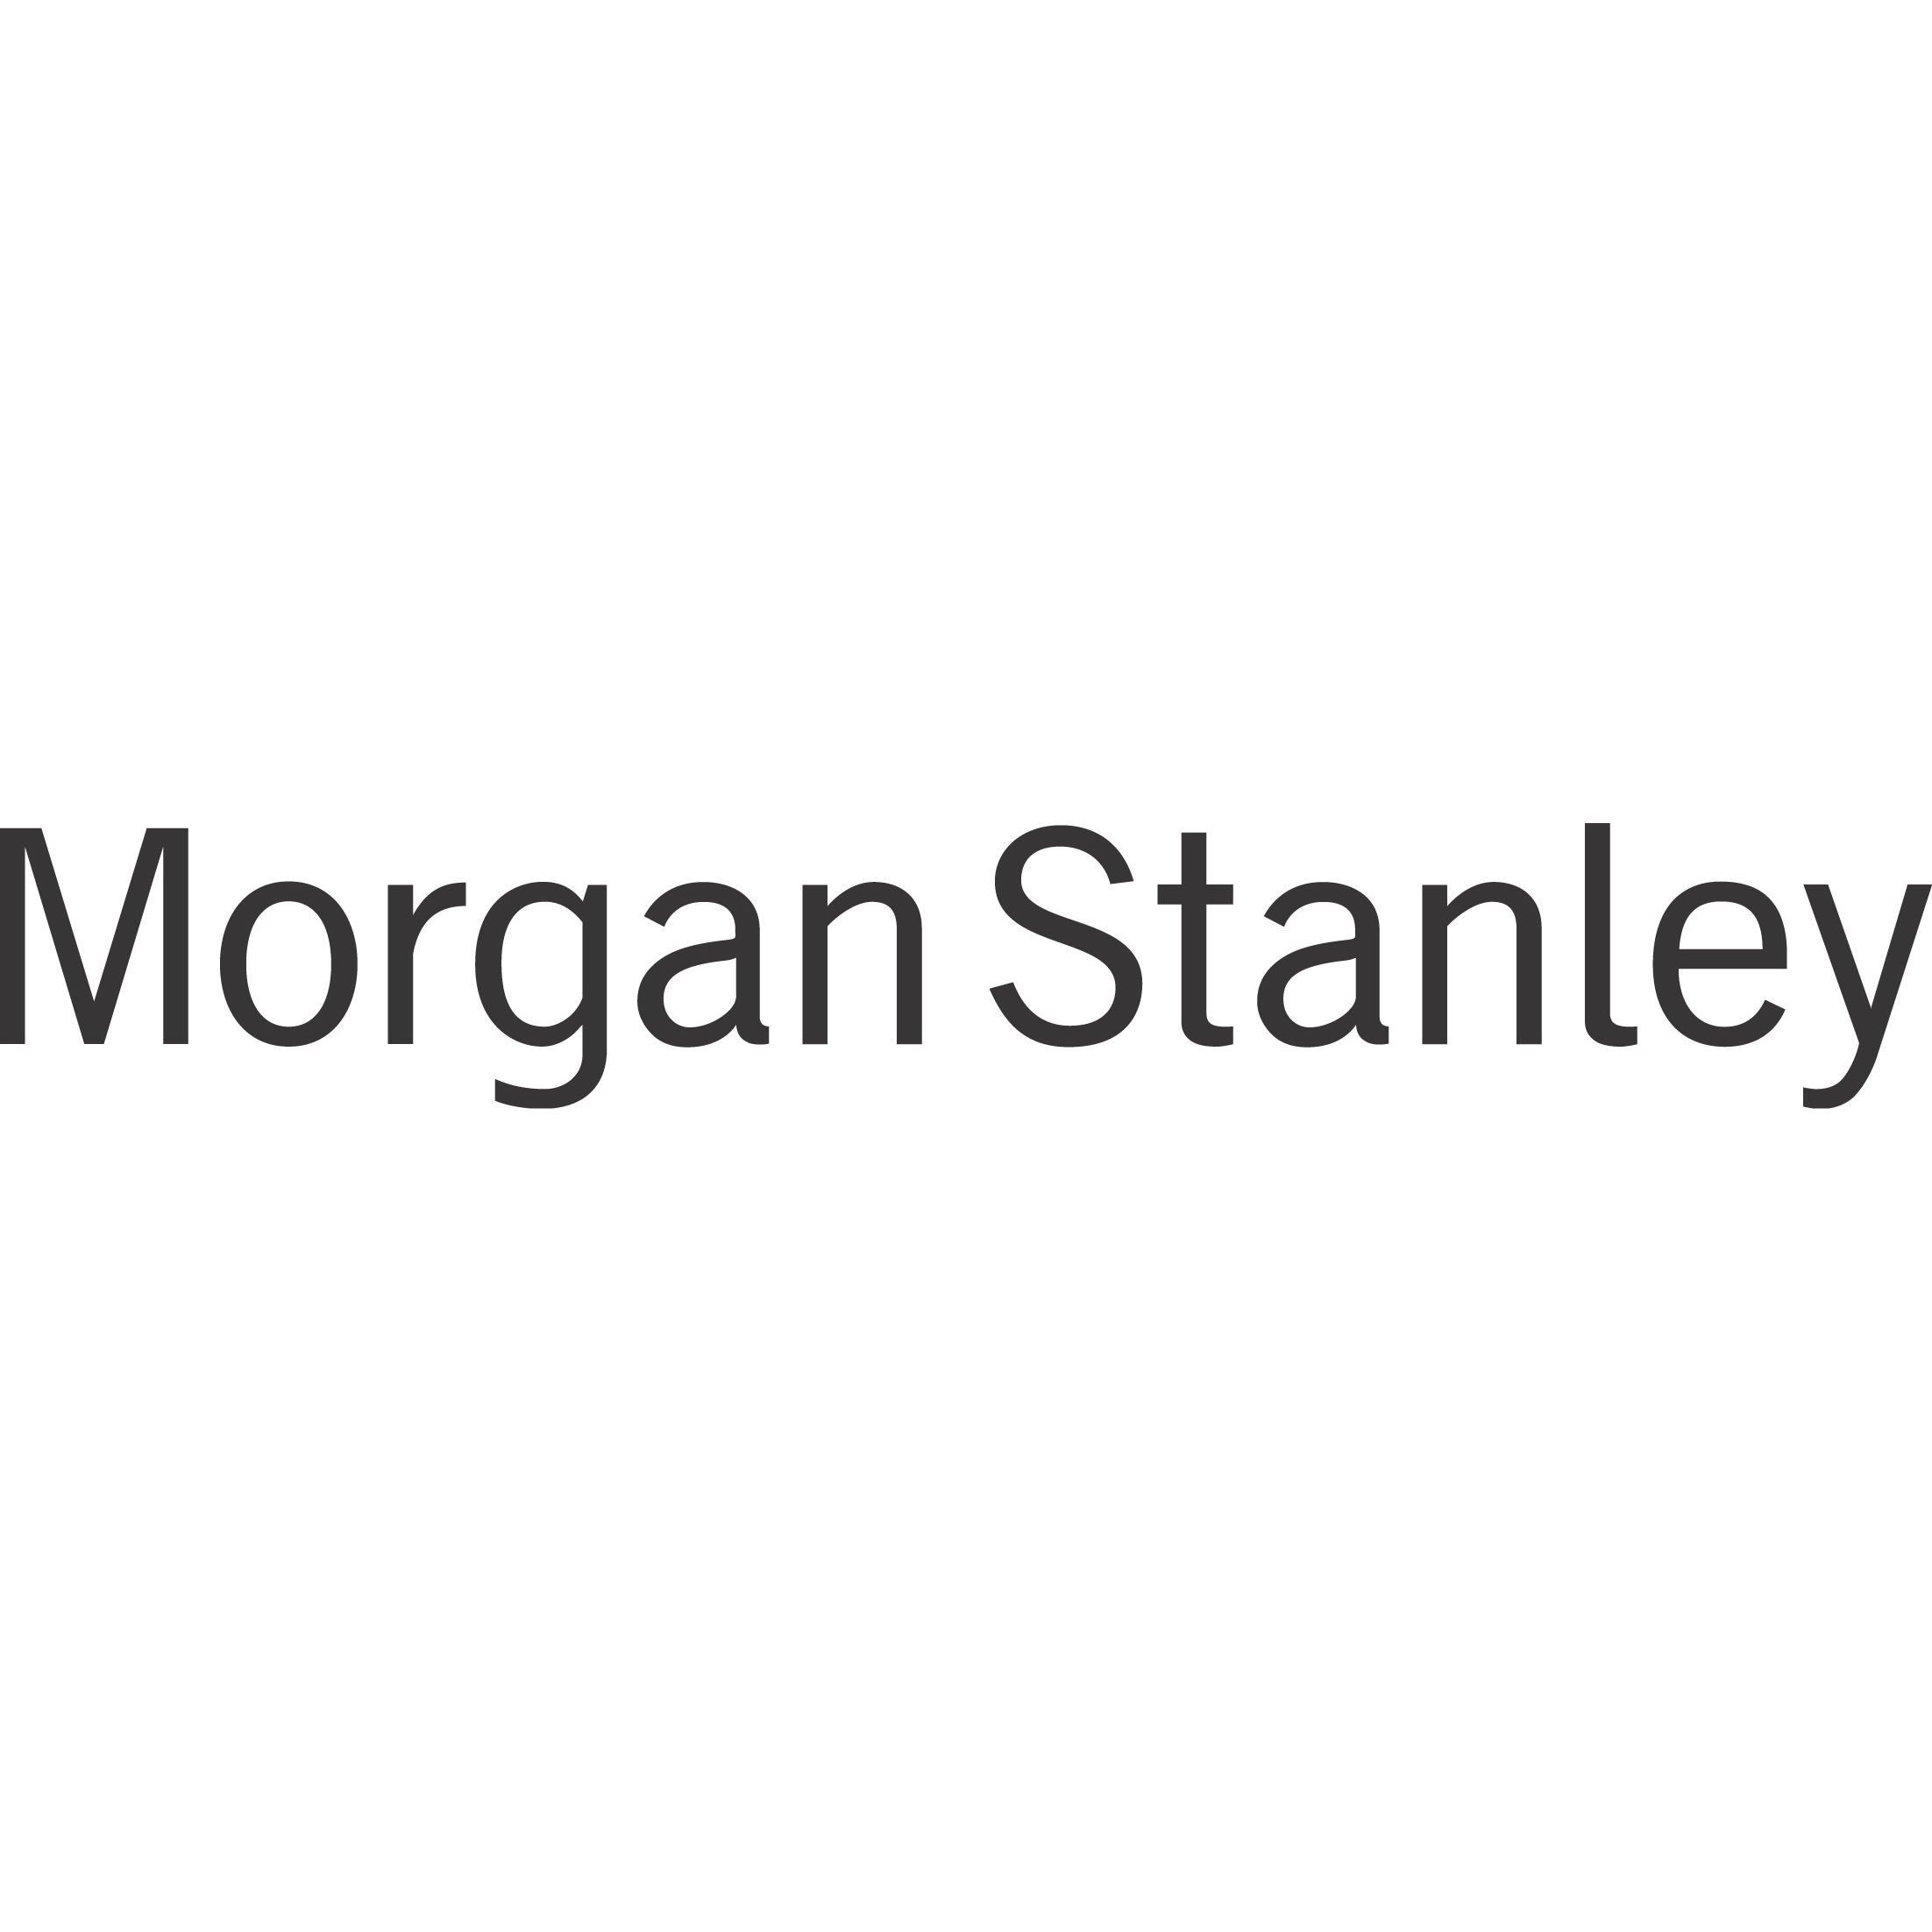 Richard Battle - Morgan Stanley | Financial Advisor in Atlanta,Georgia